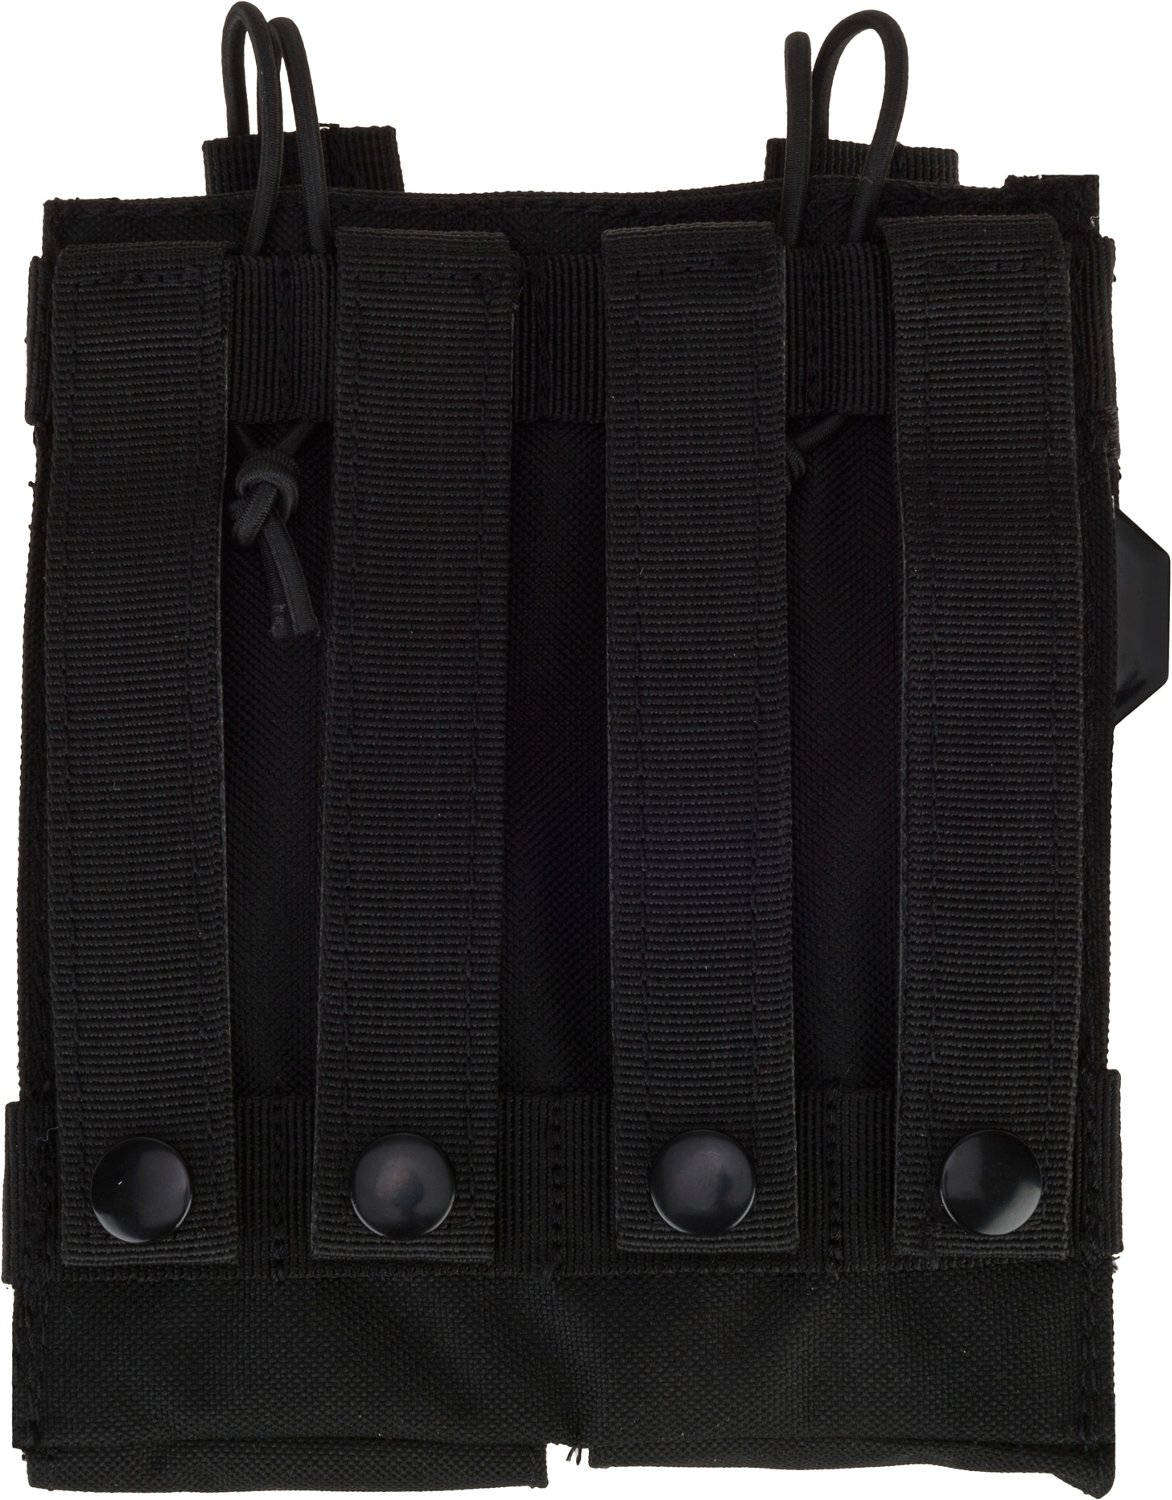 Tactical Performance™ AK Double Mag Pouch - view number 1